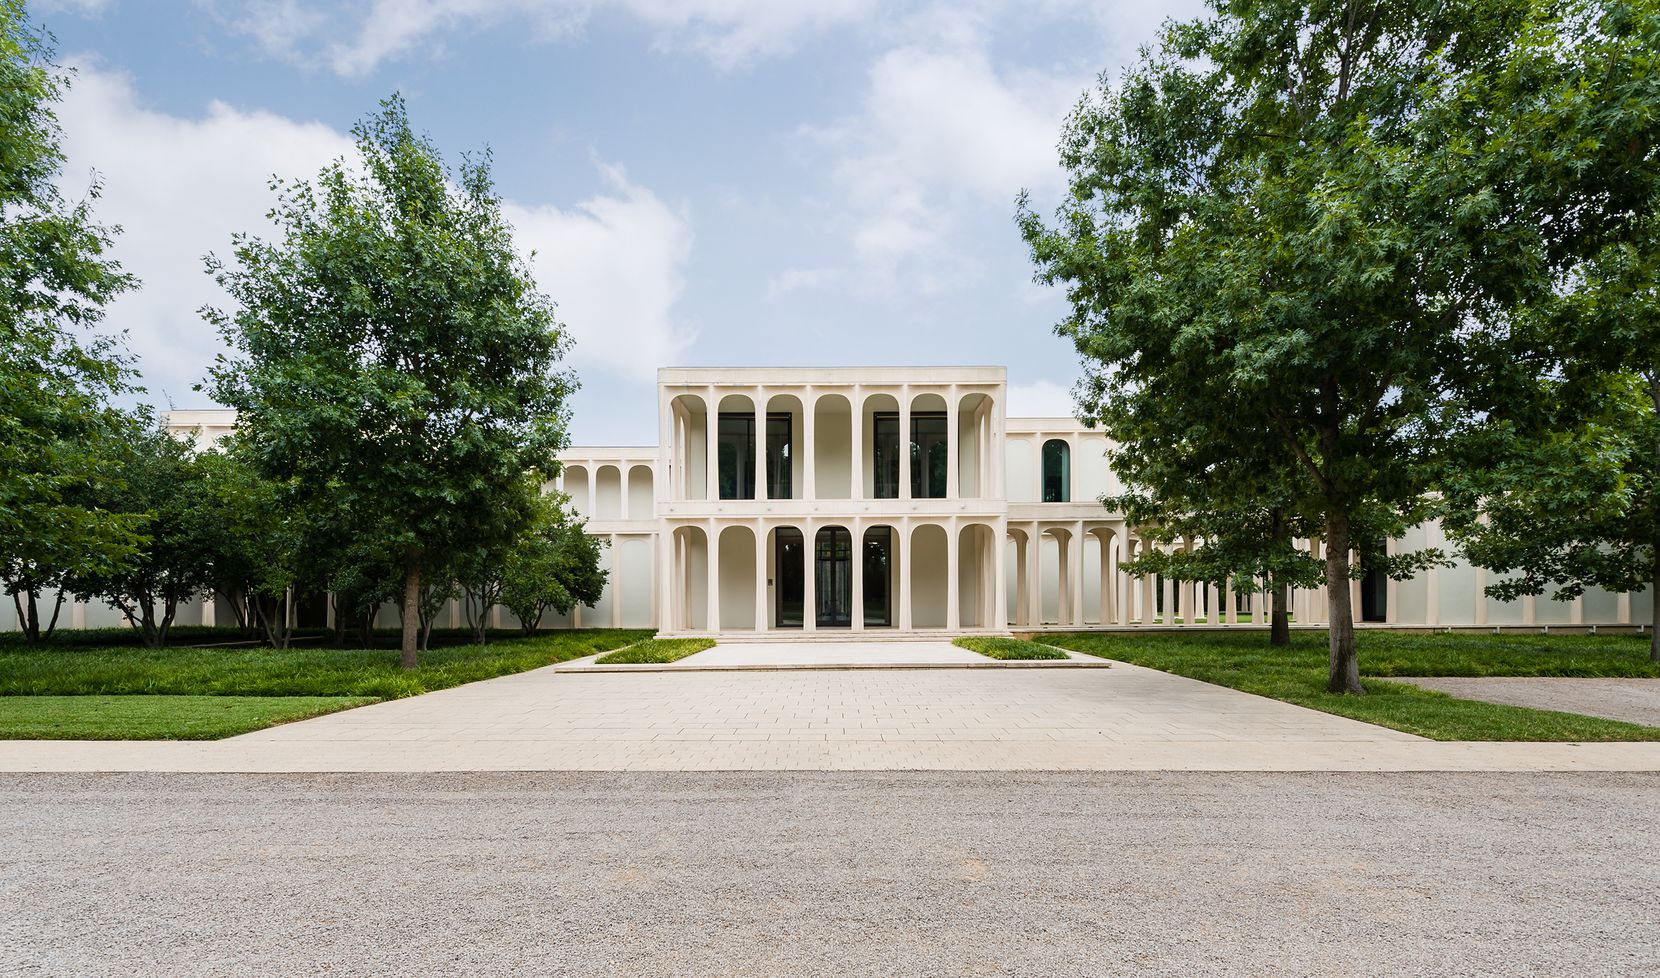 Built in the 1960s, the former Beck estate was designed by famed architect Philip Johnson.